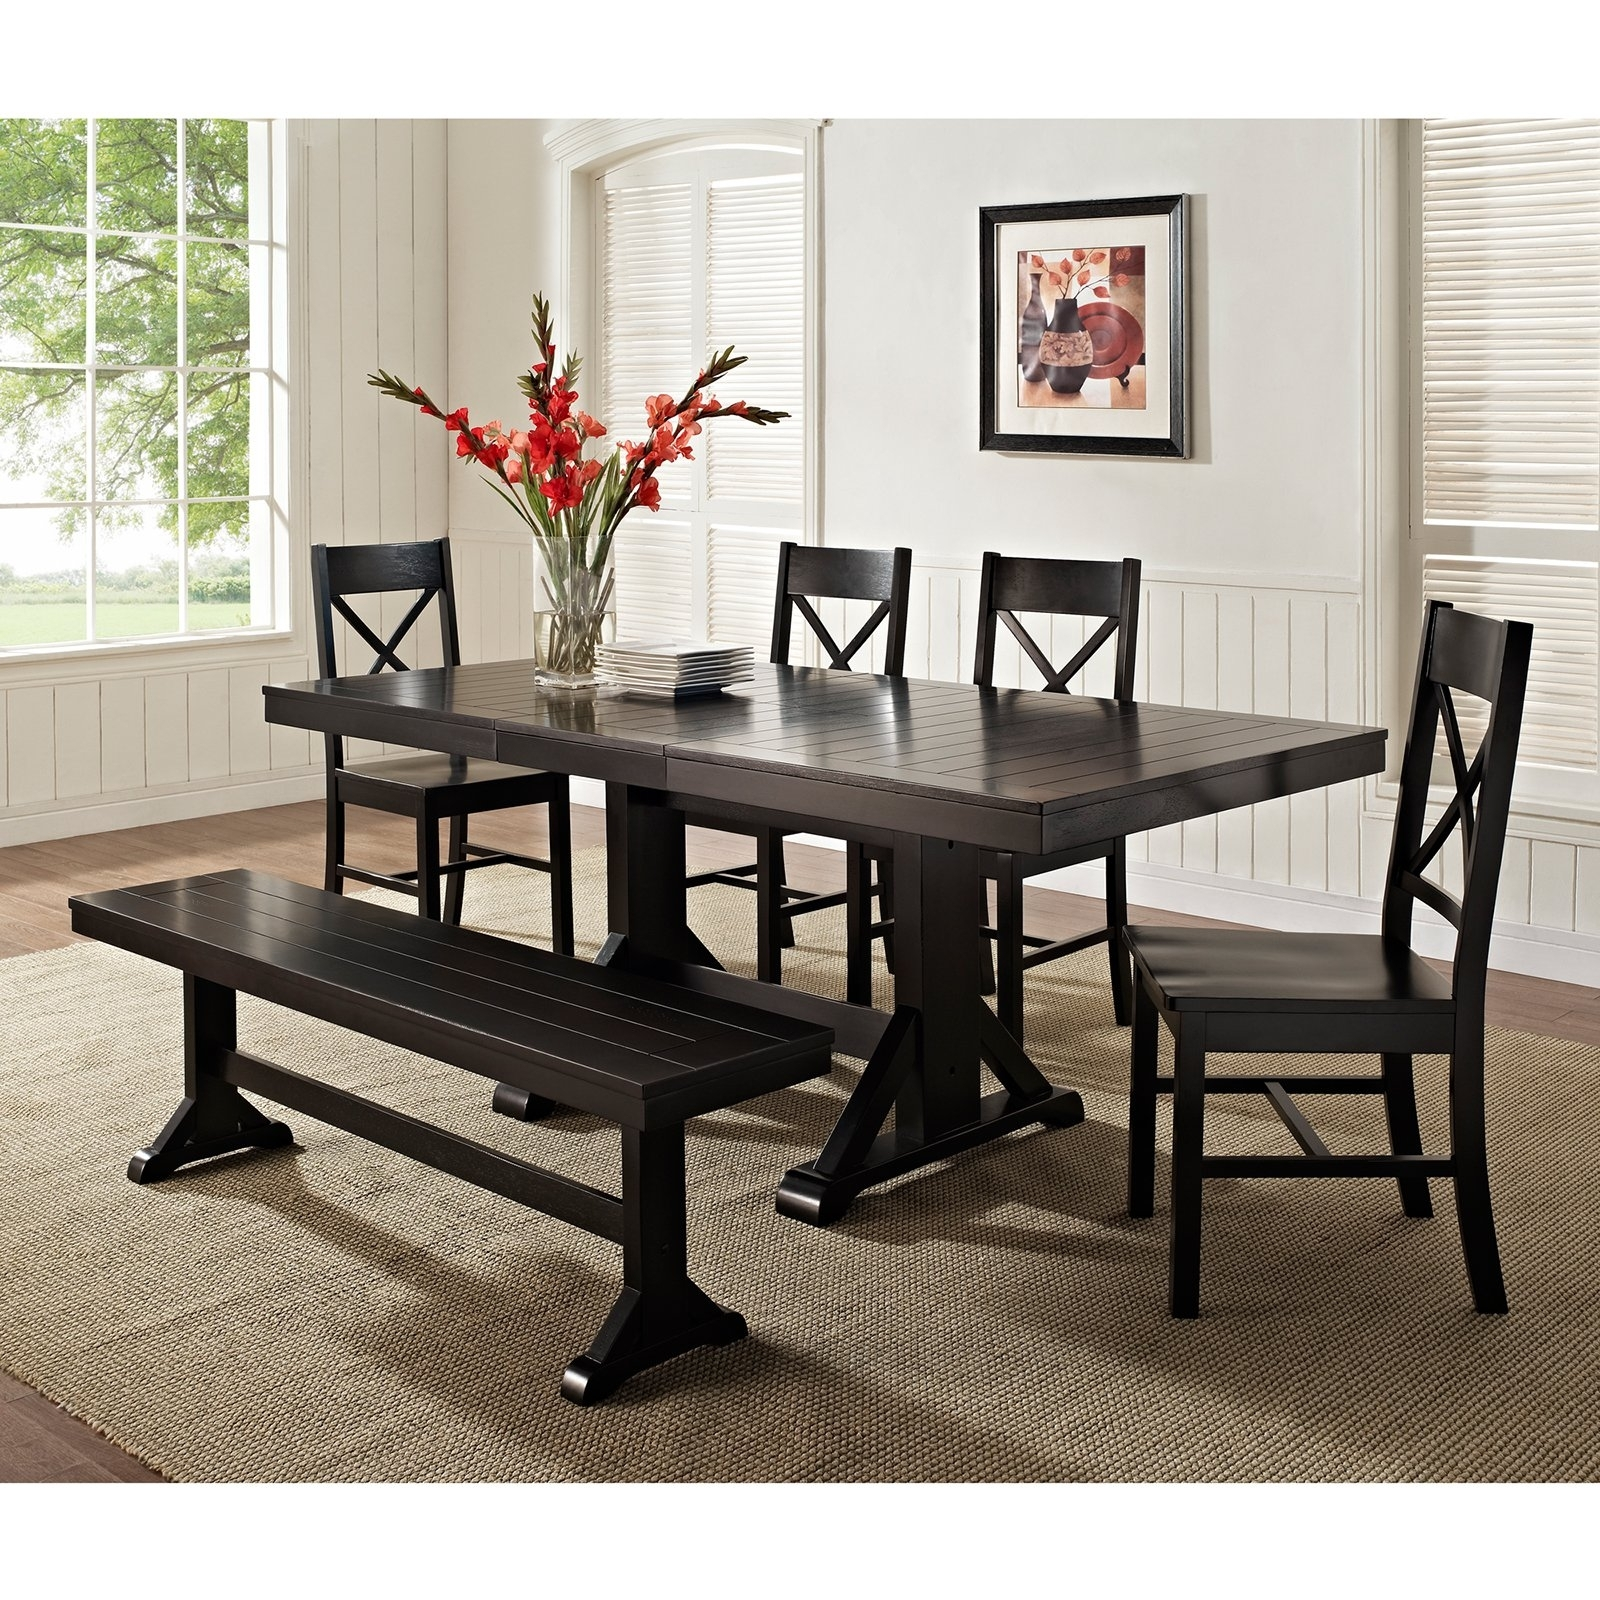 Walker Edison Black 6 Piece Solid Wood Dining Set With Bench Regarding Newest Roma Dining Tables And Chairs Sets (View 9 of 25)